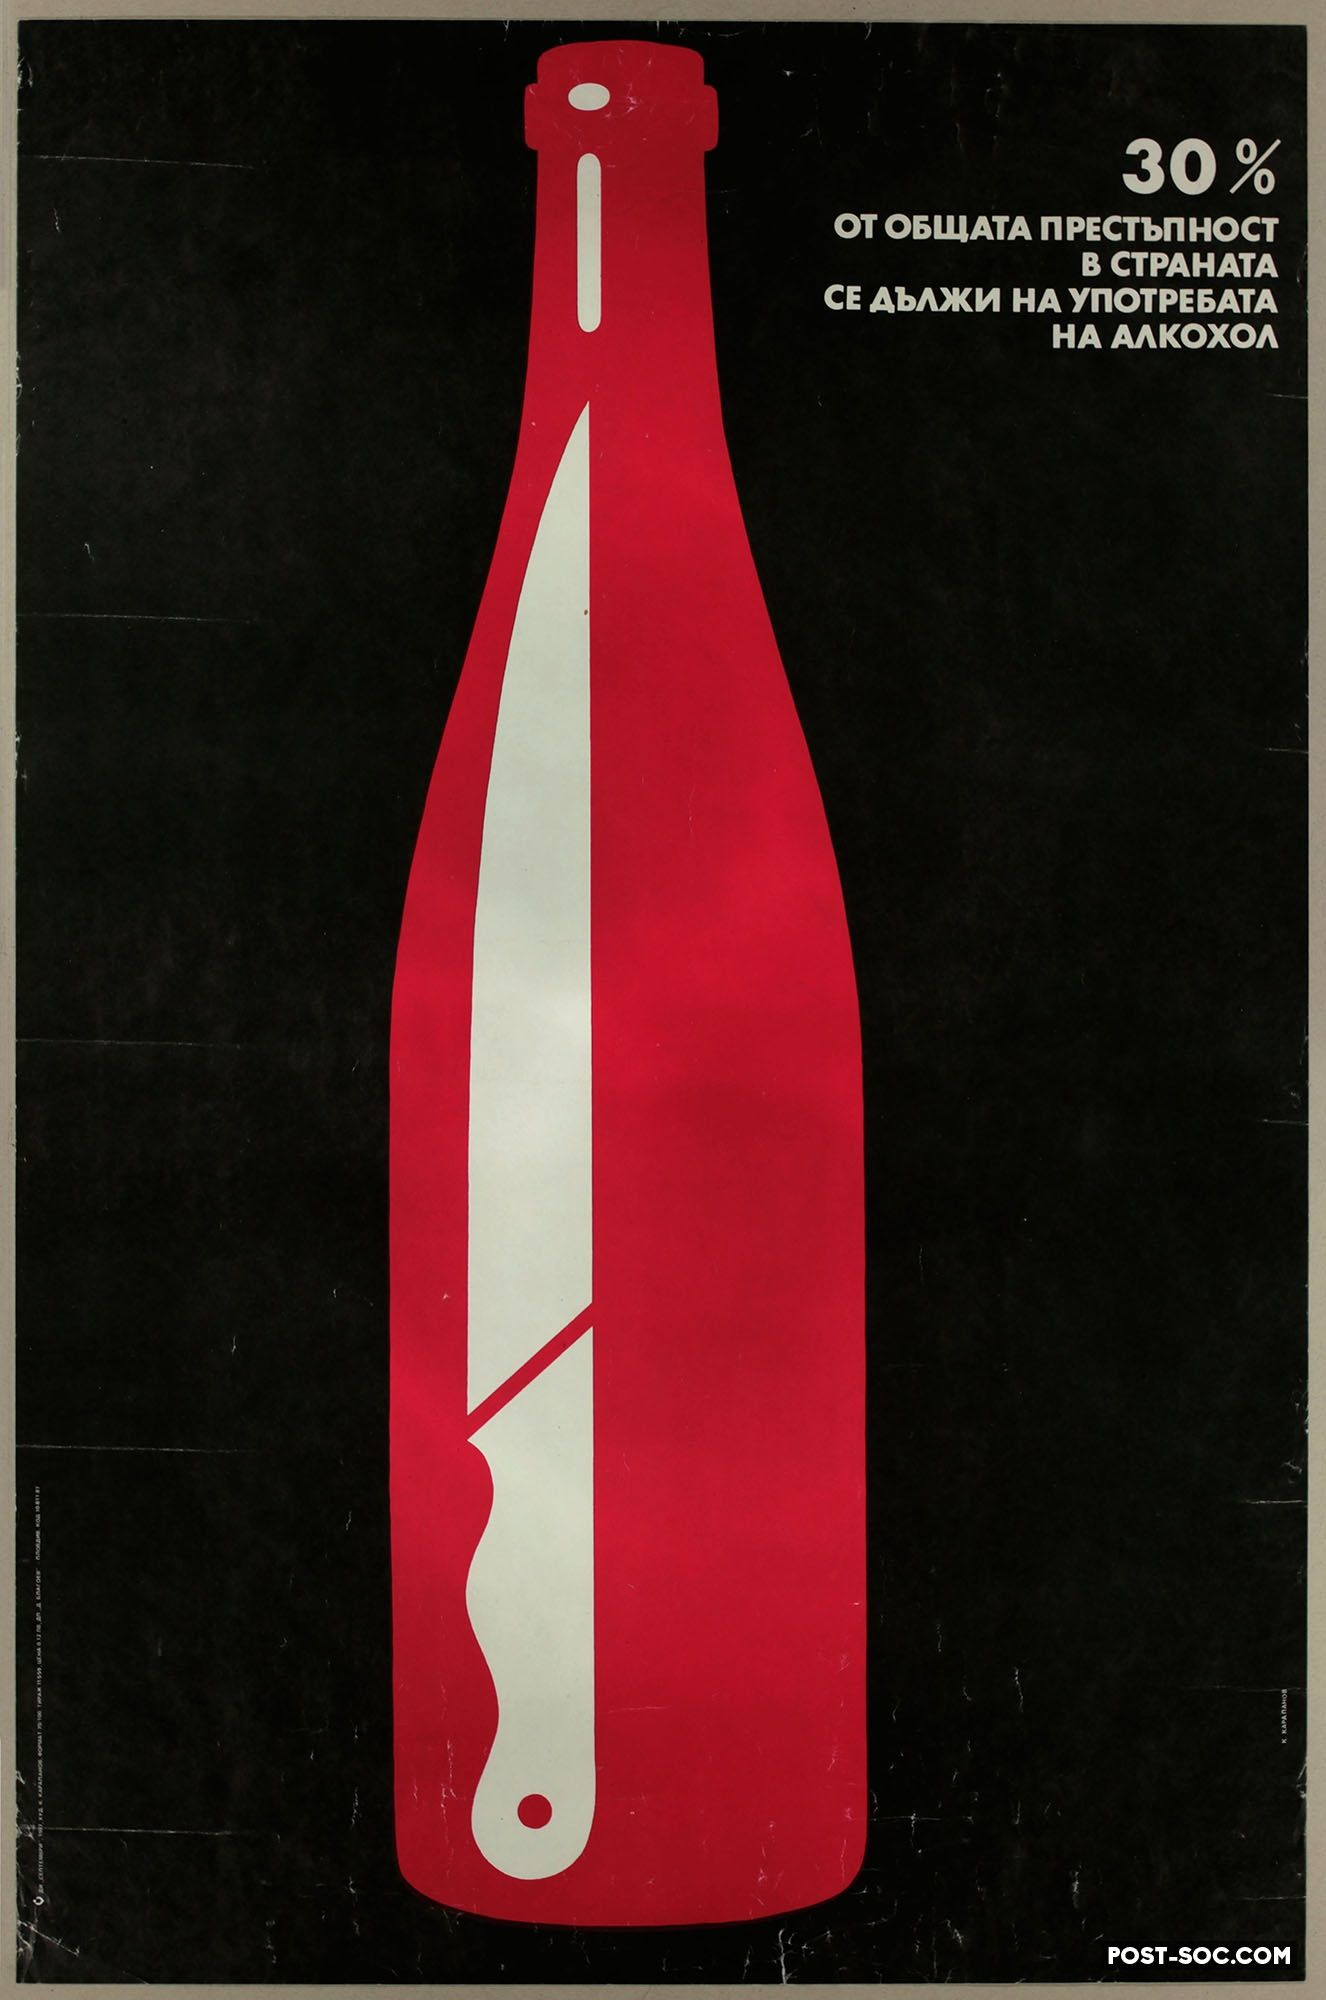 30 Of The Criminal Acts In The Country Are Happening Under The Influence Of Alcohol Bulgaria Mid 1980s Alcohol Abuse Poster Design Alcohol